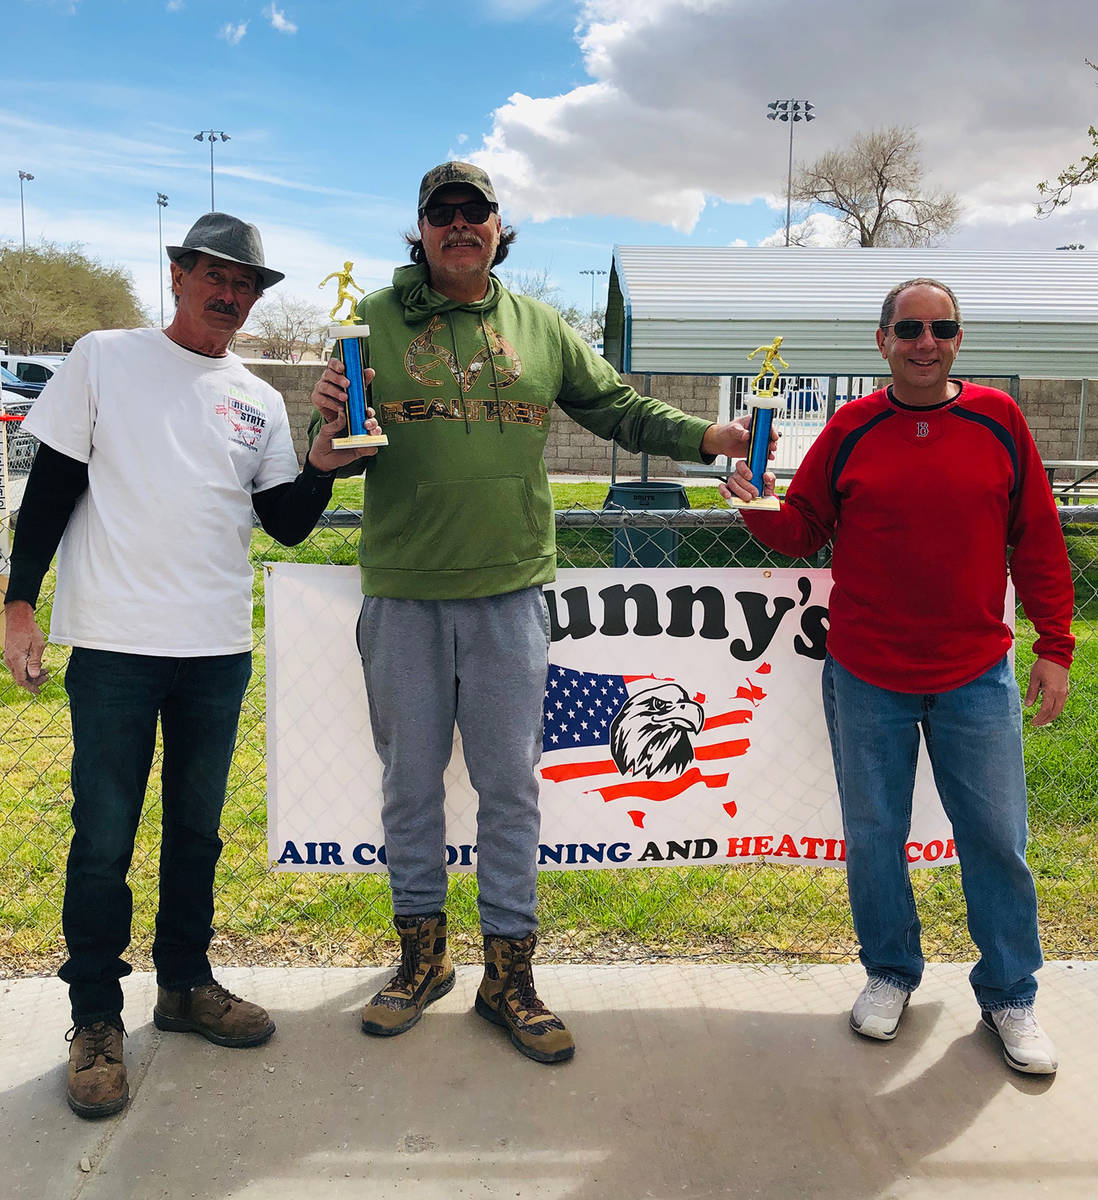 Cindy Barefield/Special to the Pahrump Valley Times Randy Salzwimmer, left, and Joe Kalache, ri ...